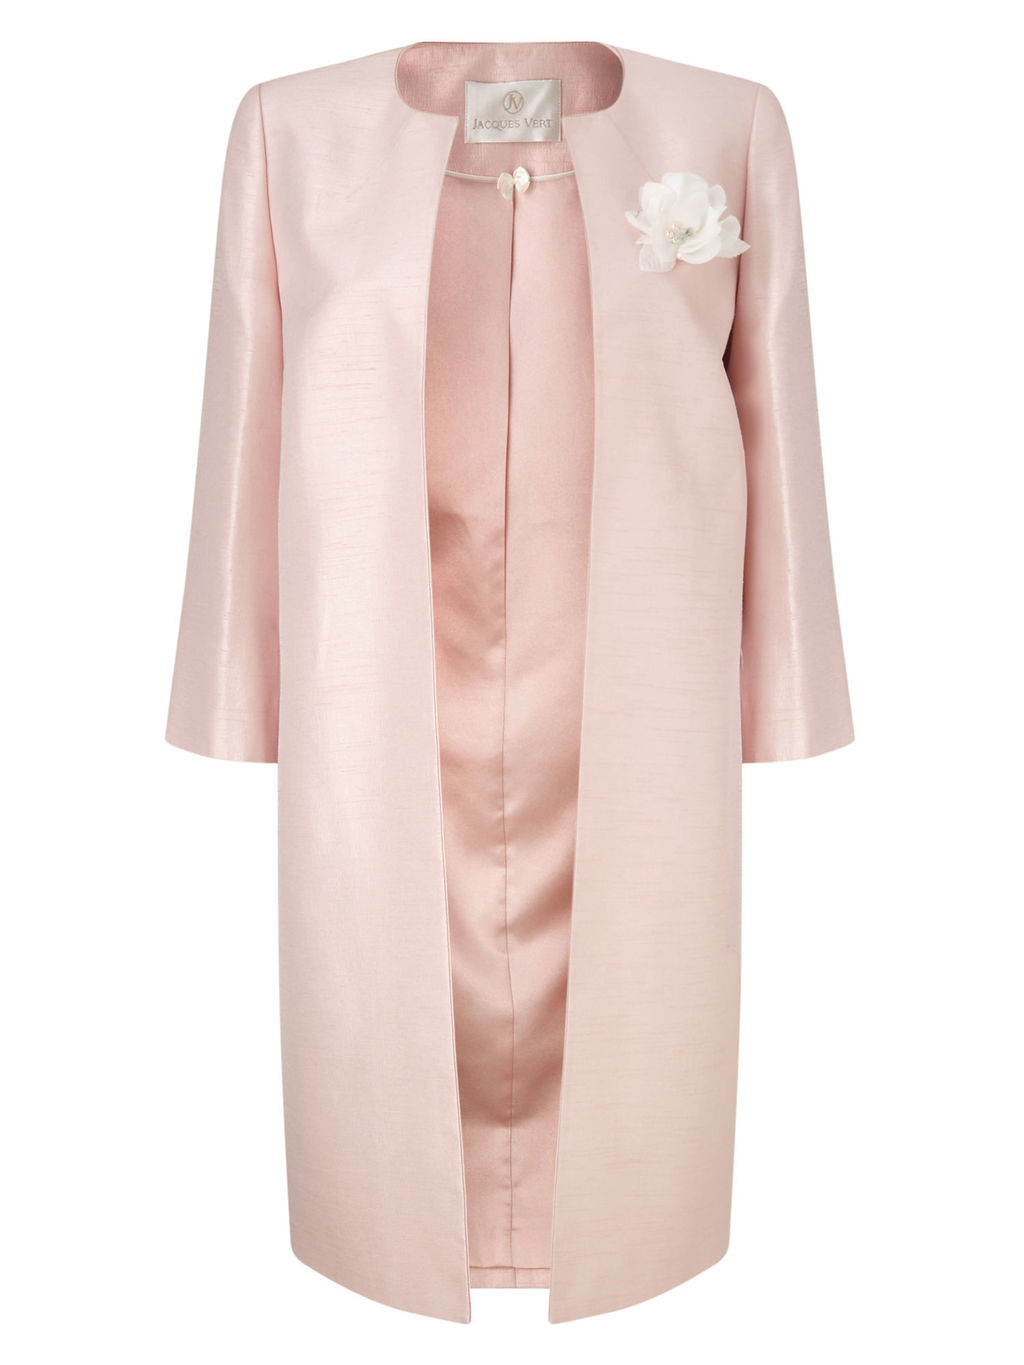 Long Occasion Coat, Blossom Pink - pattern: plain; collar: round collar/collarless; style: single breasted; length: mid thigh; predominant colour: blush; occasions: evening, occasion; fit: straight cut (boxy); fibres: polyester/polyamide - 100%; sleeve length: long sleeve; sleeve style: standard; texture group: structured shiny - satin/tafetta/silk etc.; collar break: high/illusion of break when open; pattern type: fabric; embellishment: corsage; season: s/s 2016; wardrobe: event